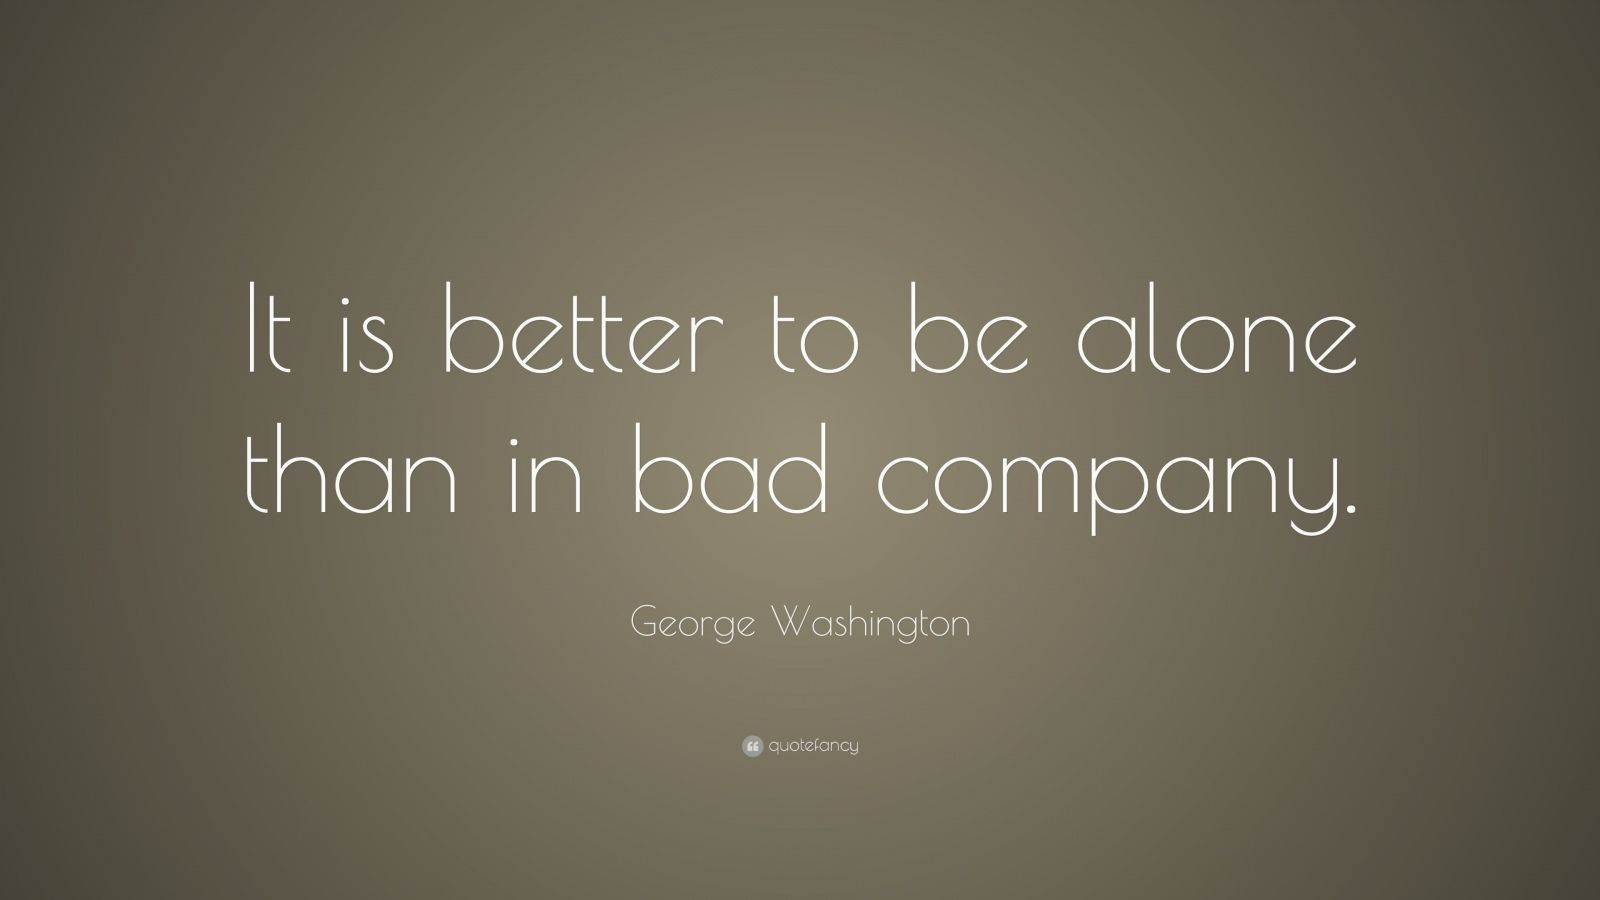 better alone than in bad company English proverbs and sayings alphabetical lists of commonly-used proverbs and sayings in english list b :  better be alone than in bad company.